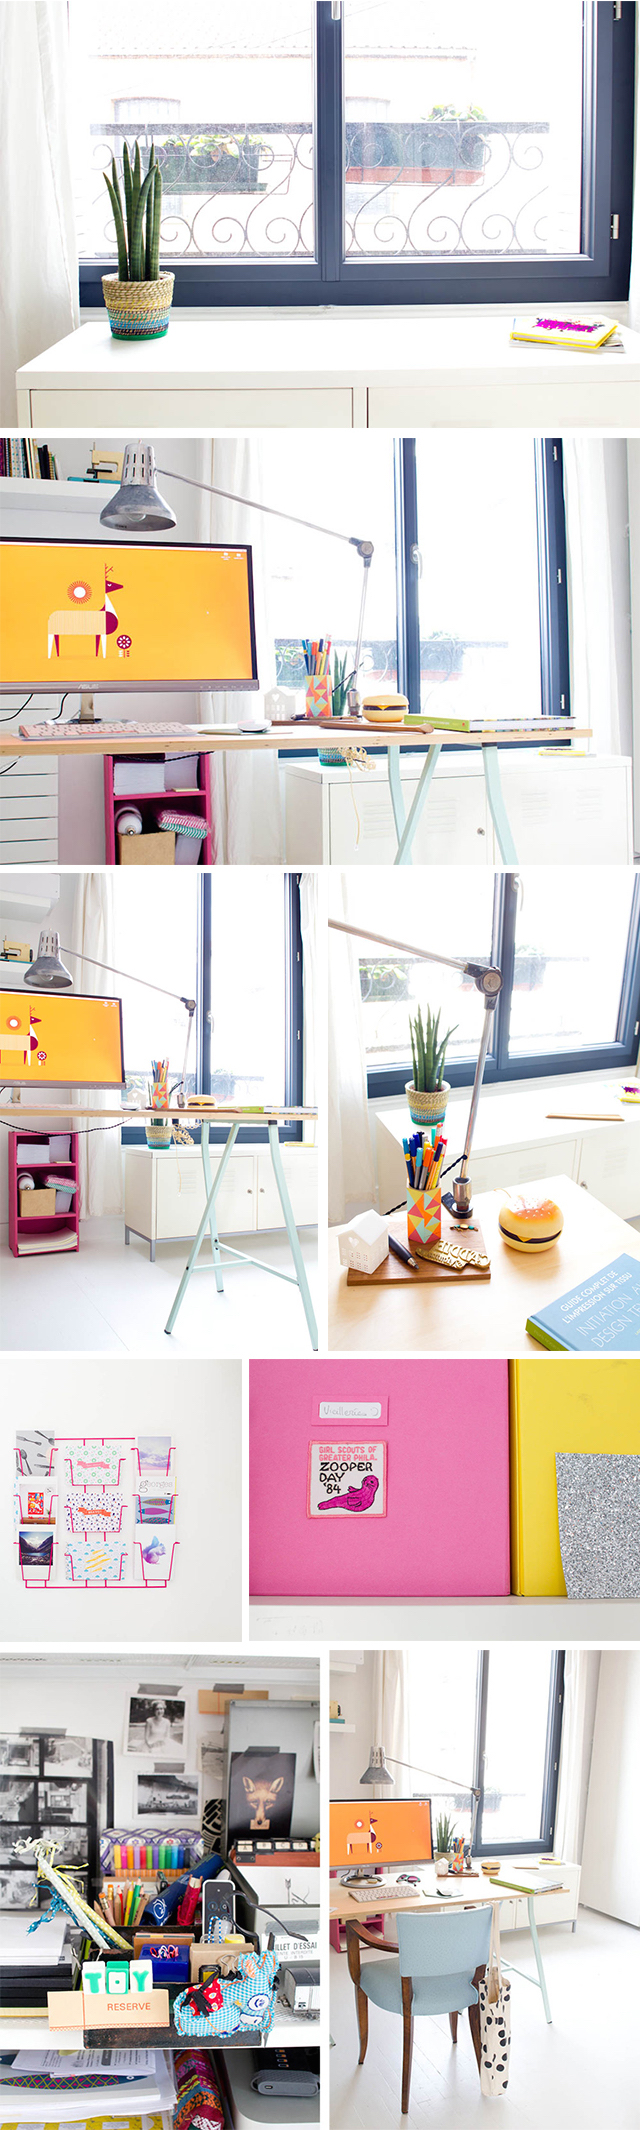 bureau-vert-cerise-elephant-in-the-room